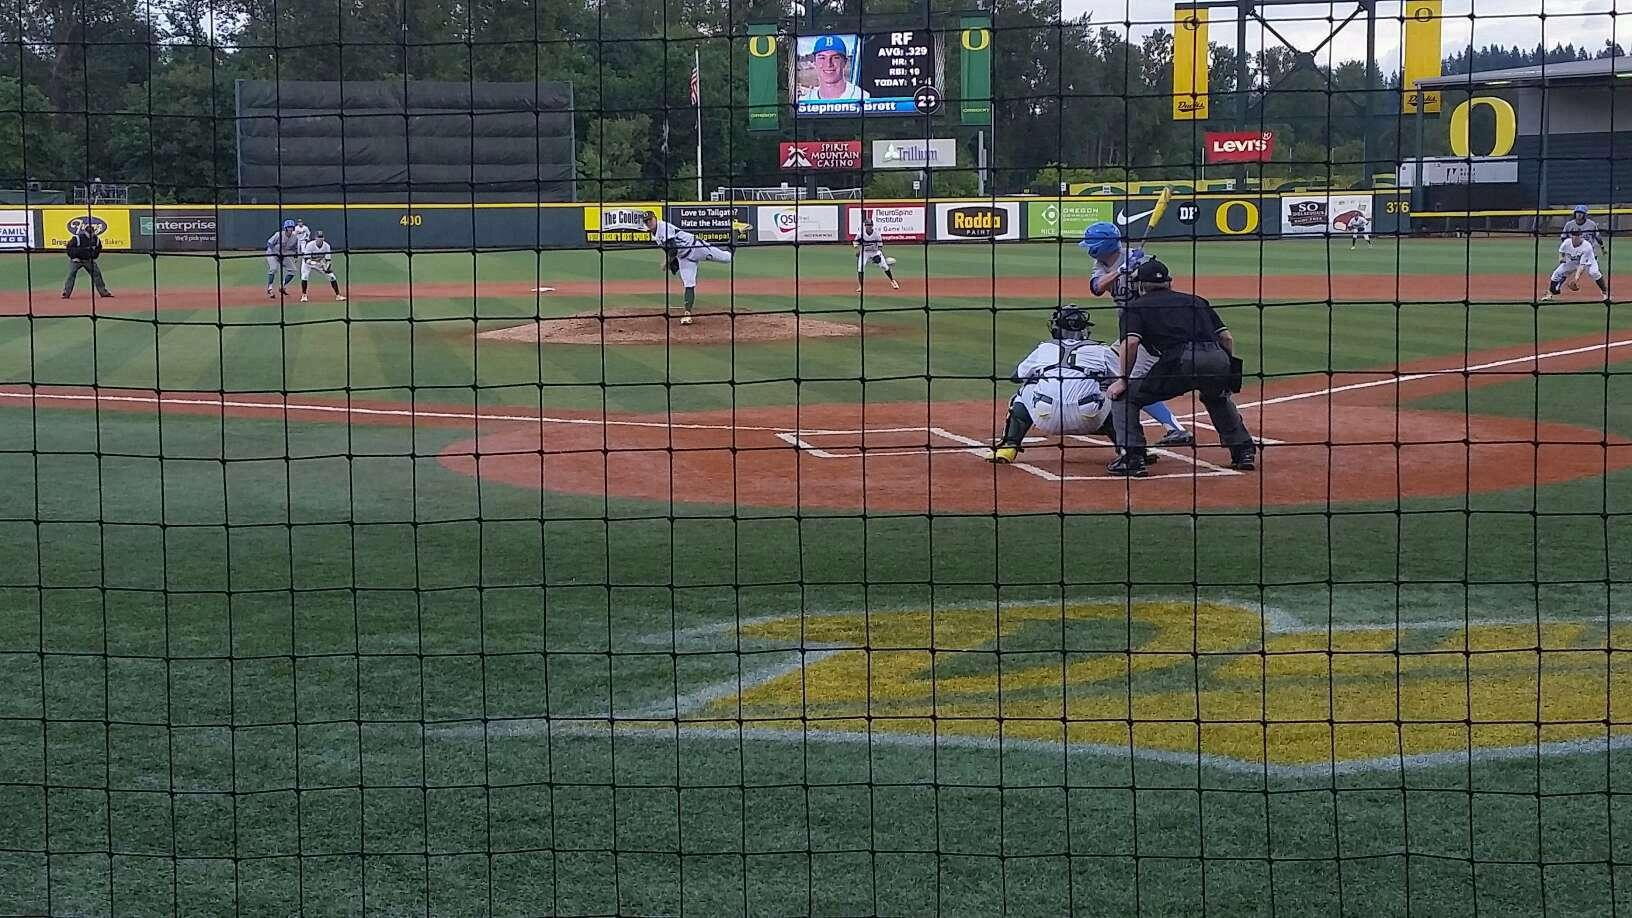 PK Park Section 8 Row 3 Seat 1